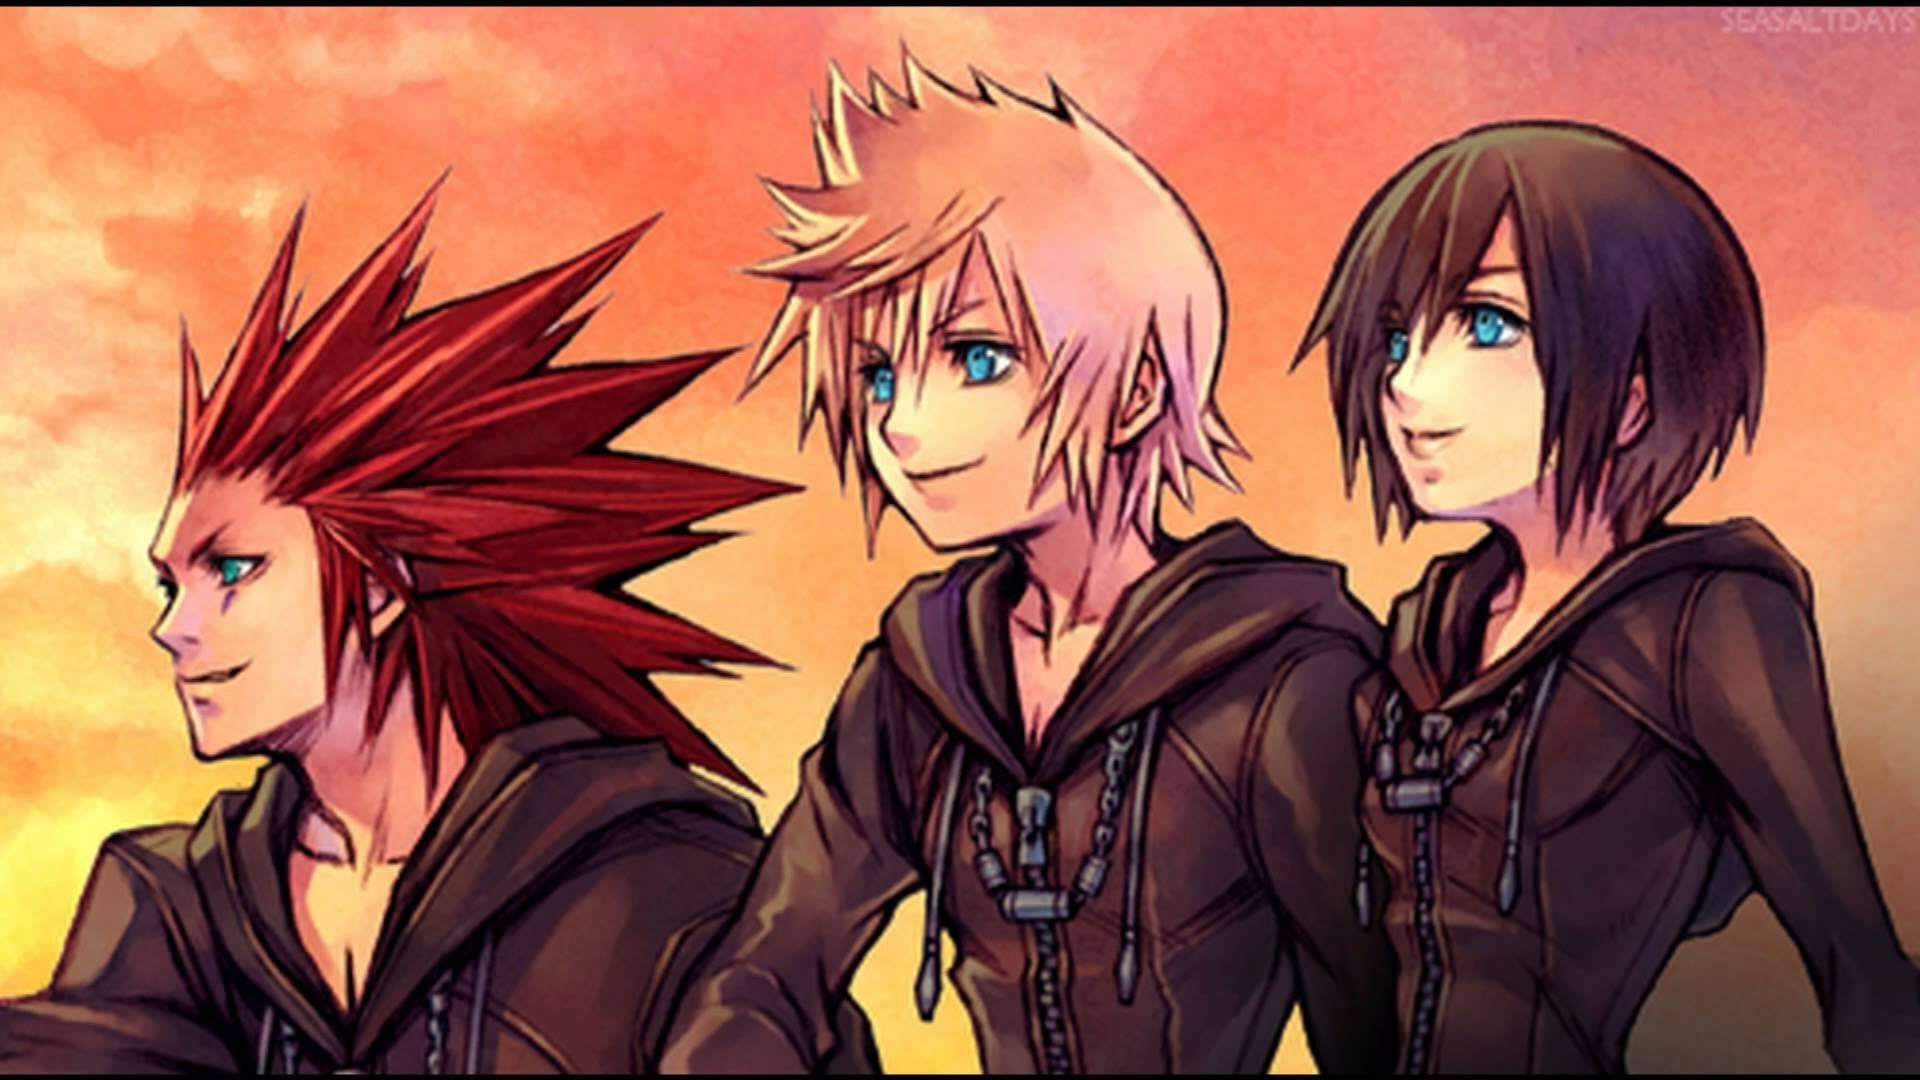 358 2 Days Kingdom Hearts 1 5 Hd Remix By Uxianxiii On Deviantart Axel Kingdom Hearts Kingdom Hearts Kingdom Hearts 1